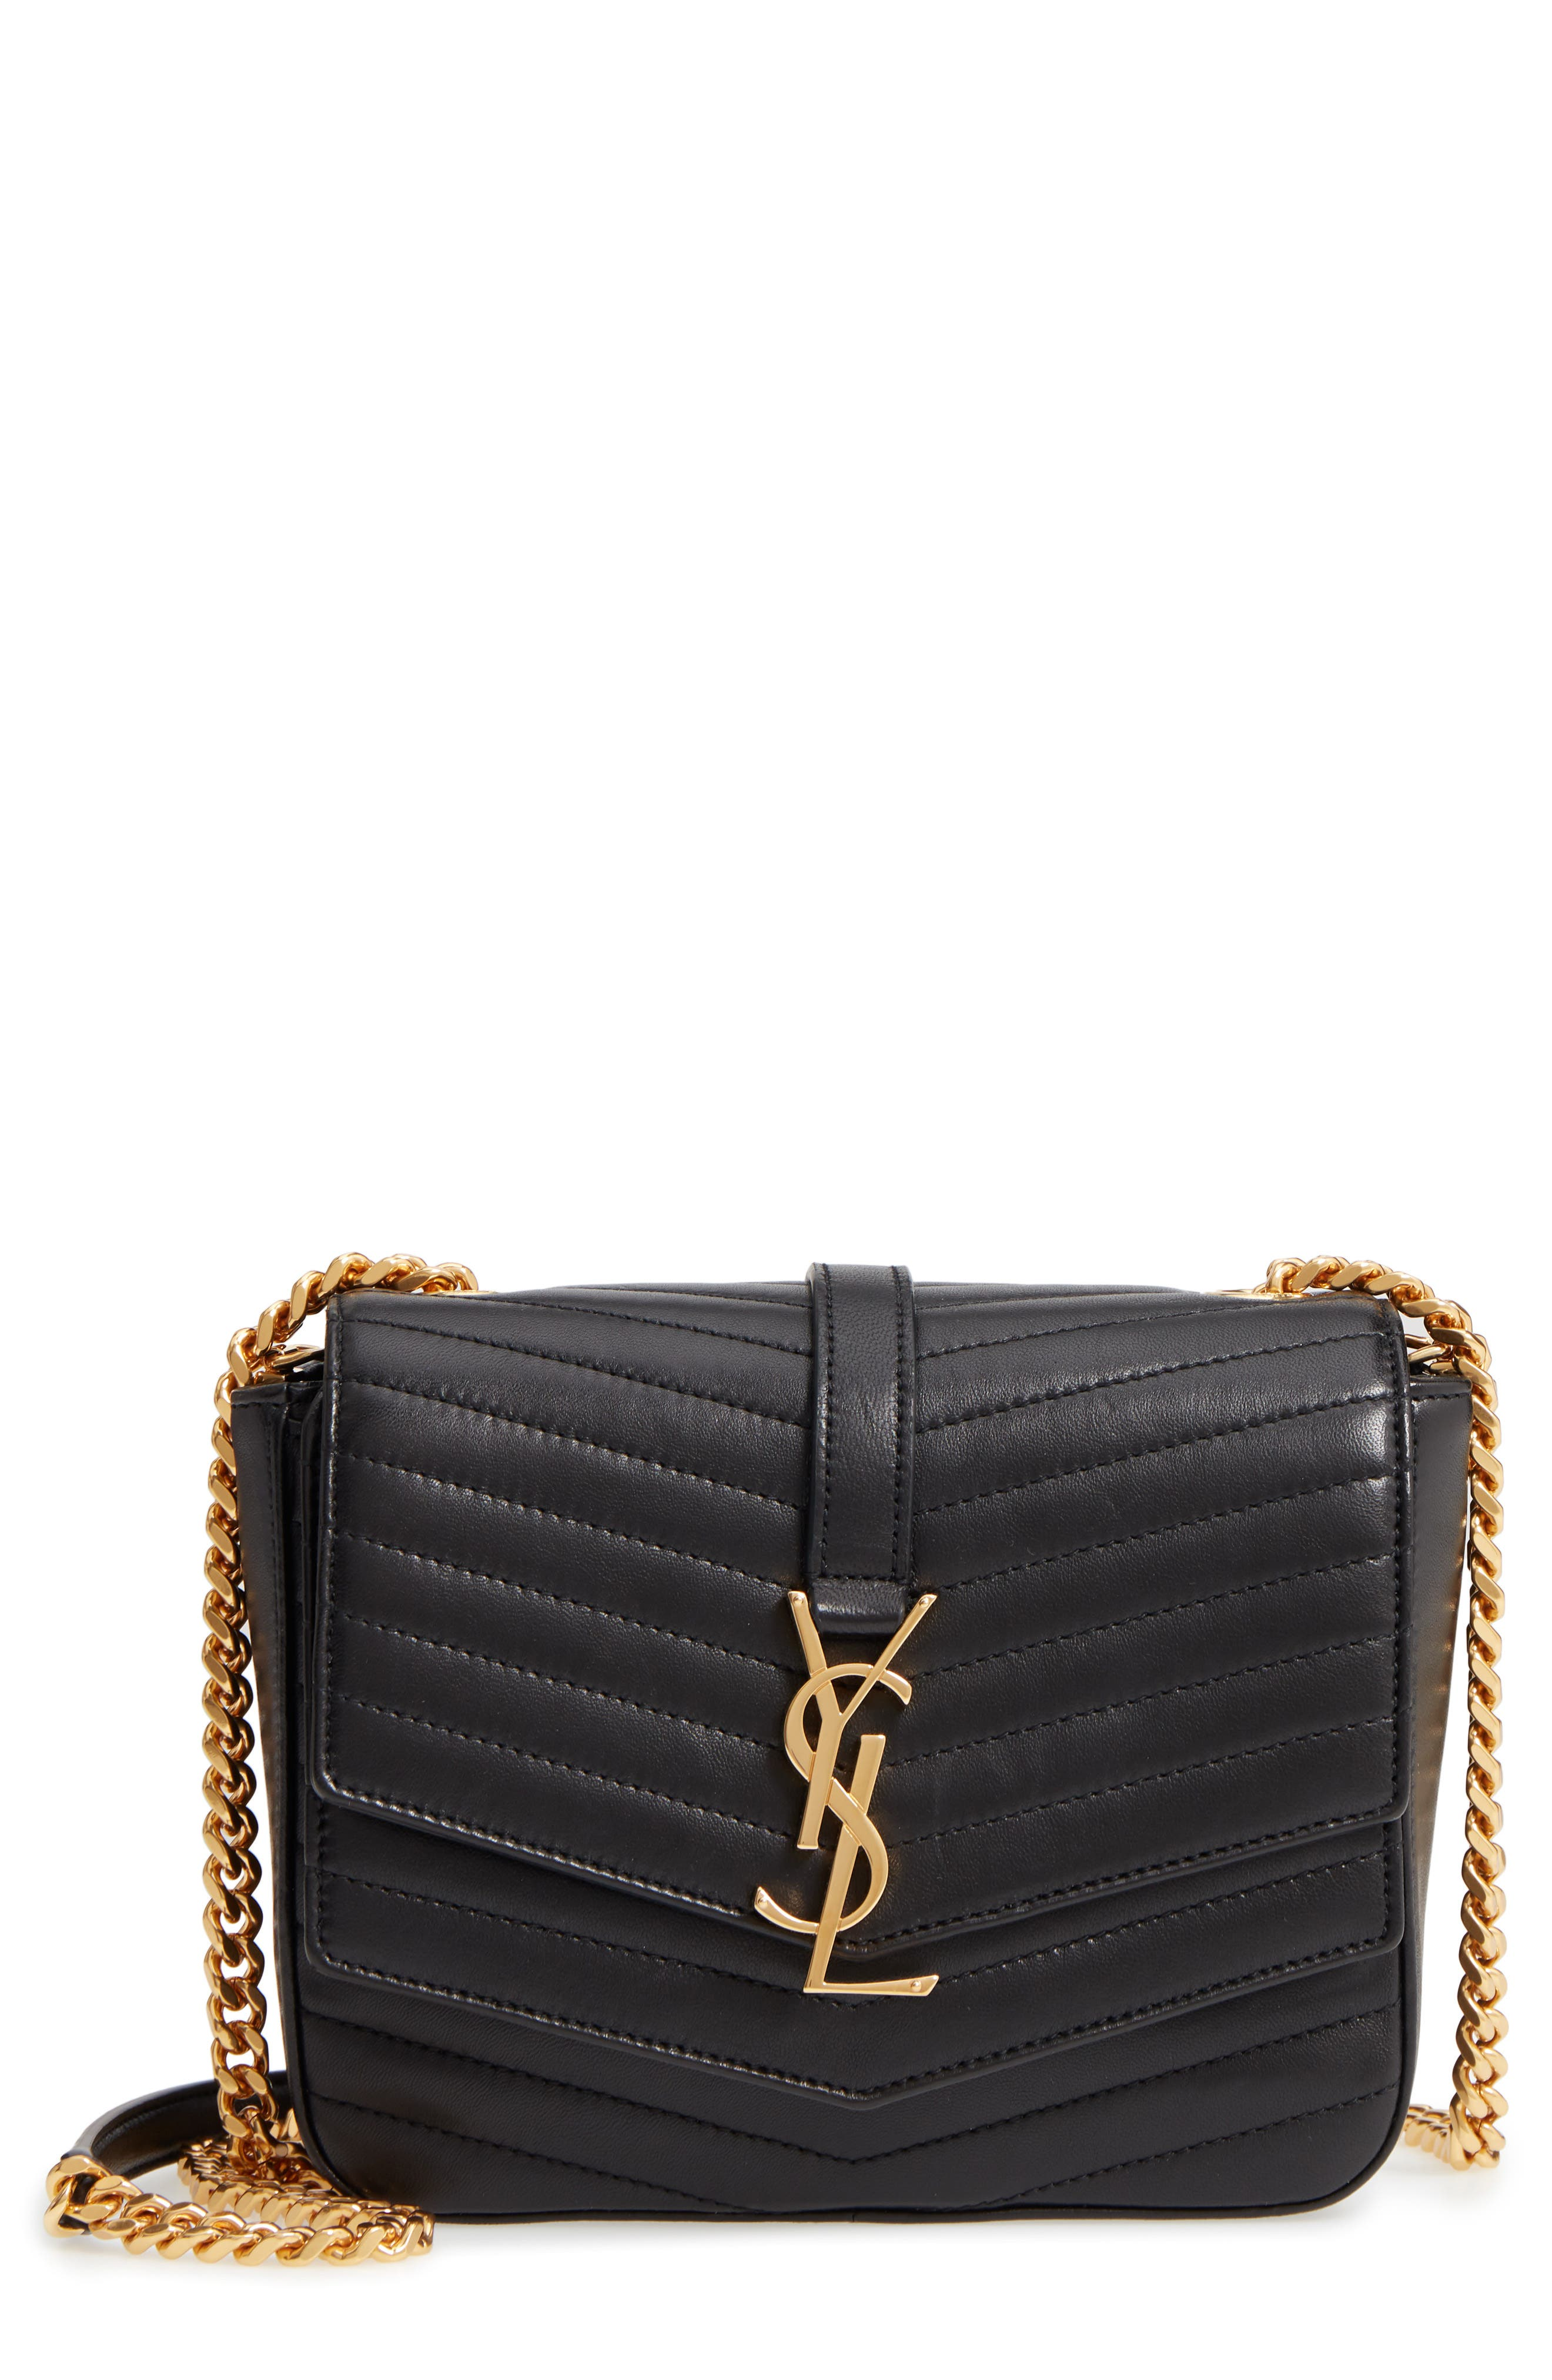 Montaigne Quilted Lambskin Crossbody Bag,                         Main,                         color, NERO